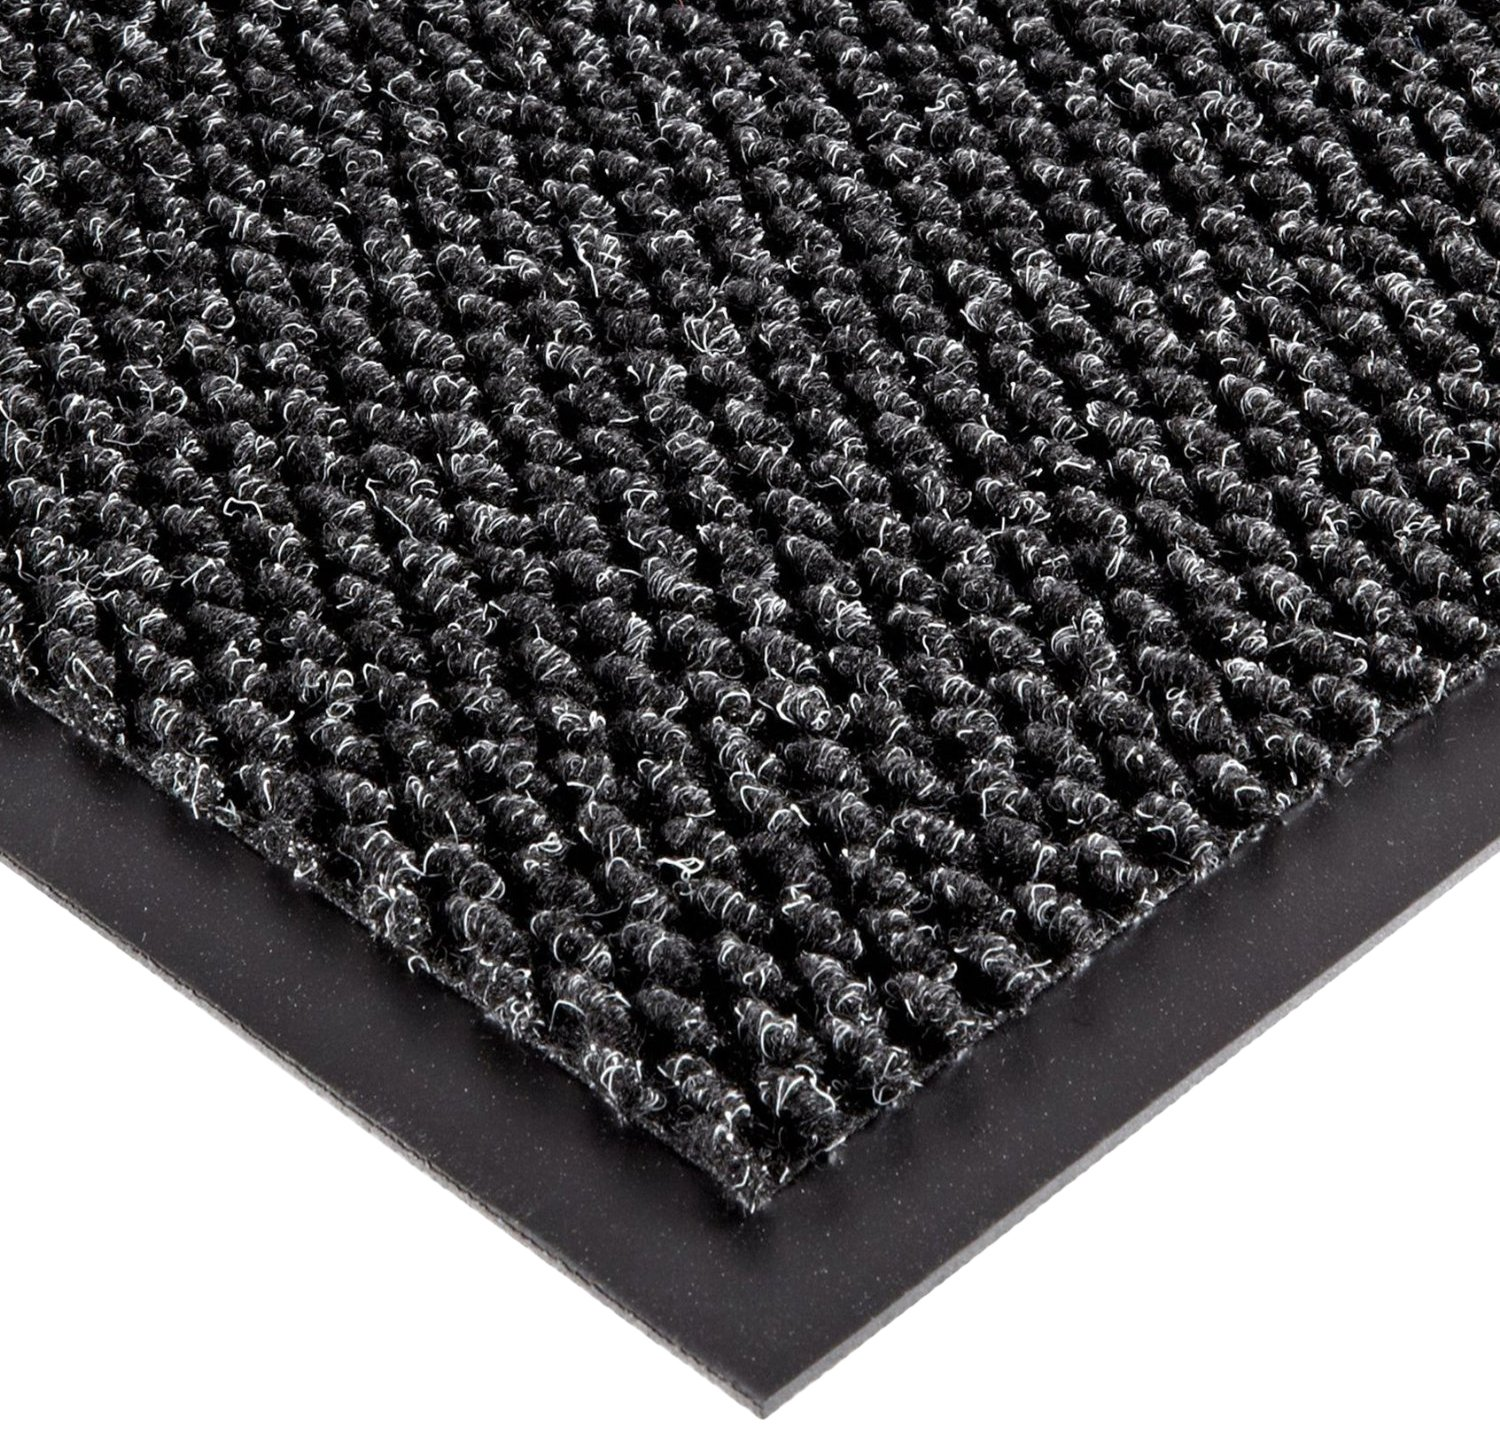 SUPERIOR MANUFACTURING GROUP 136S0035CH Entrance Matting 3 Ft x 5 Ft Charcoal Polynib